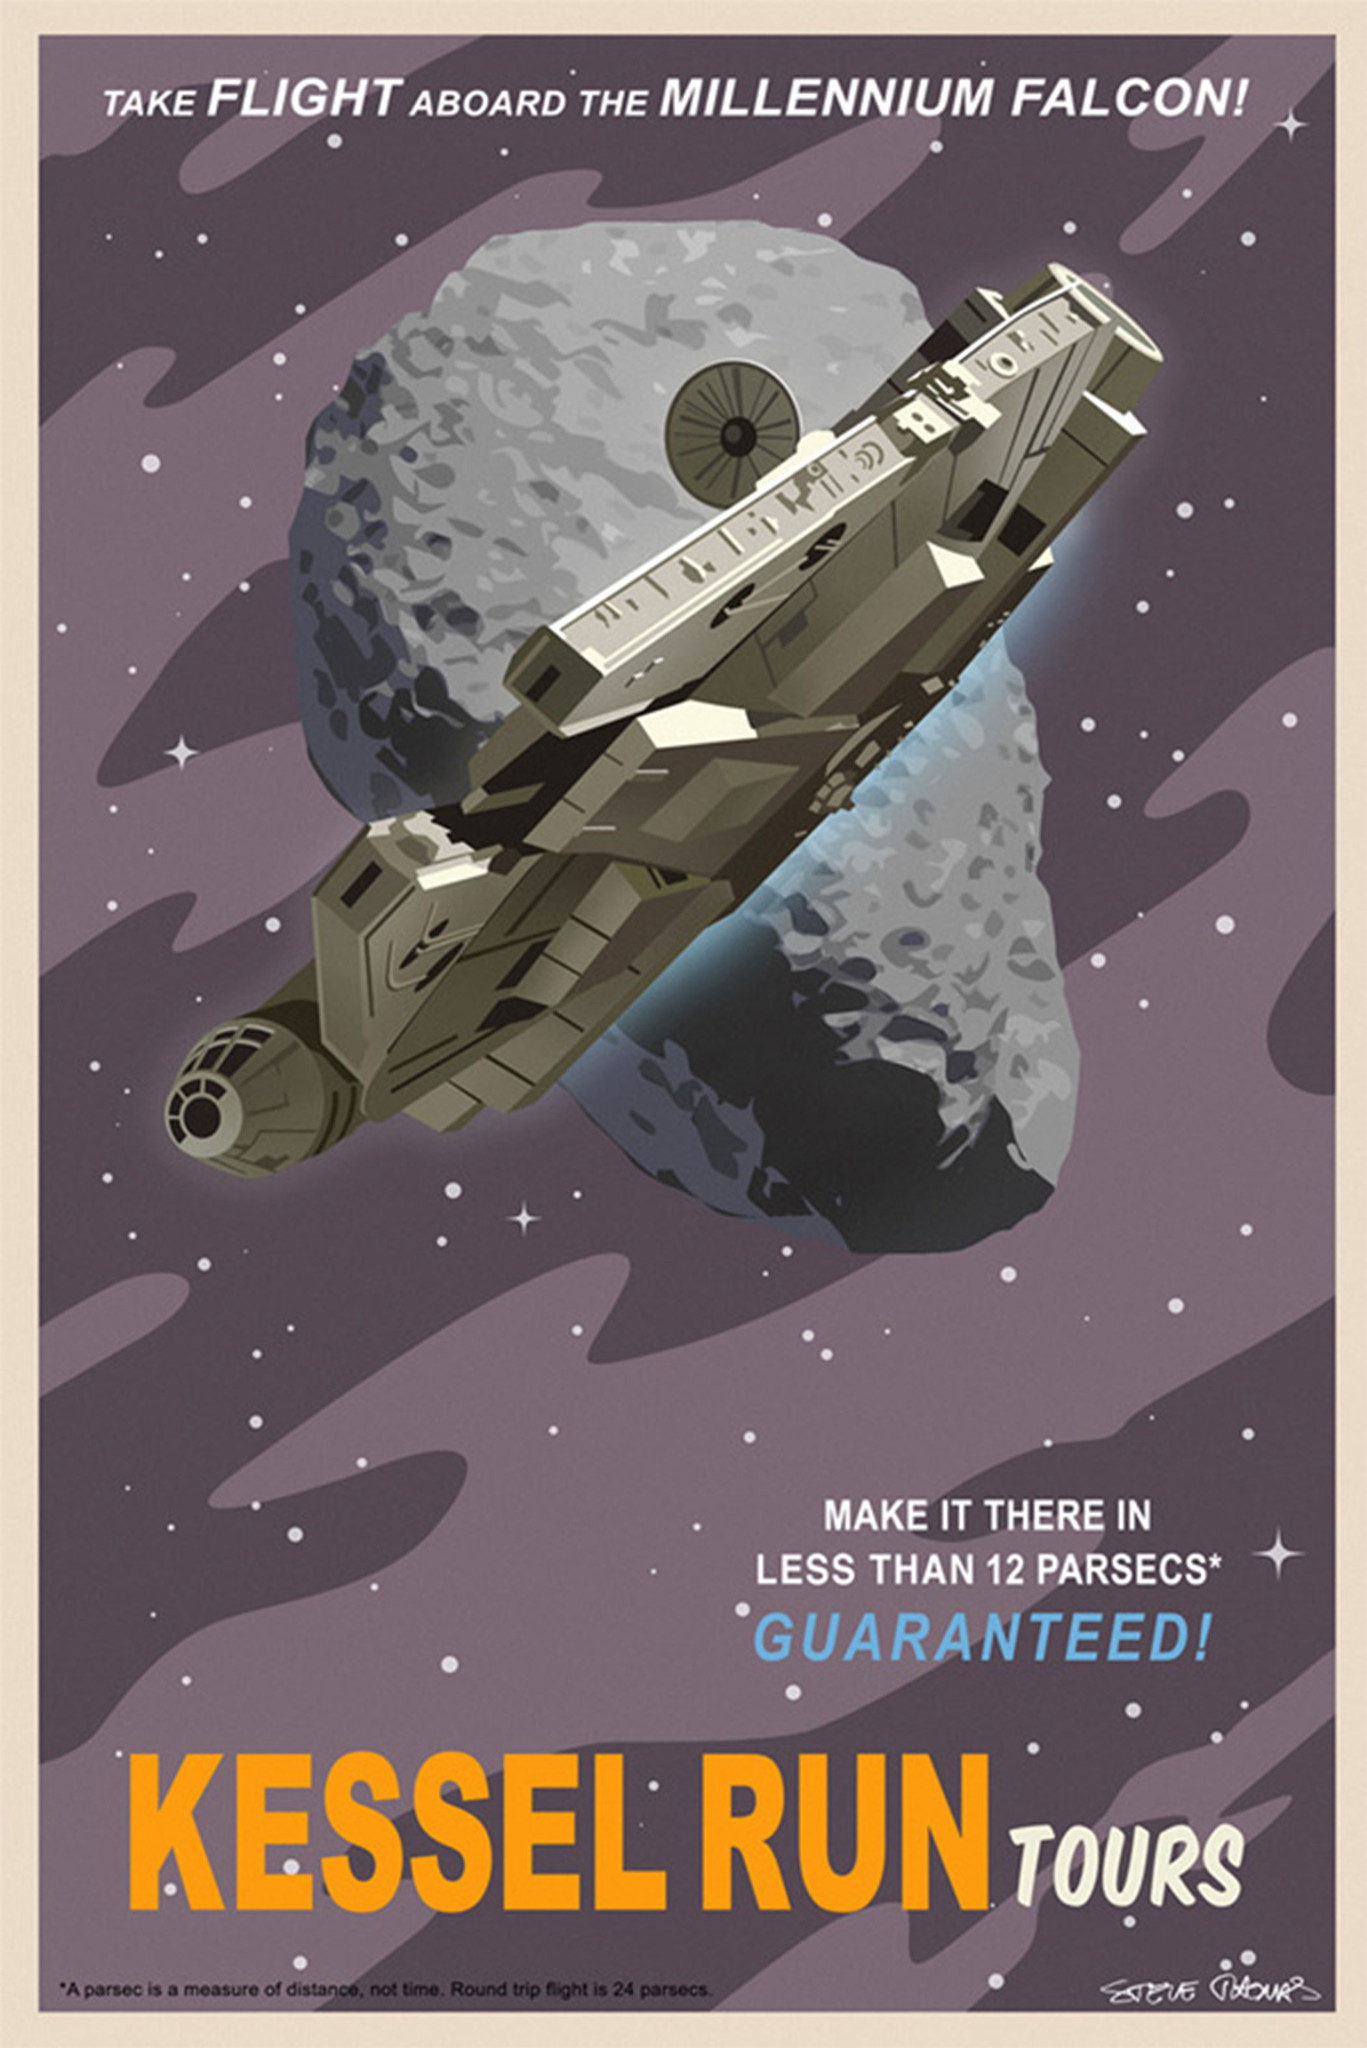 star-wars-travel-posters-steve-thomas-6